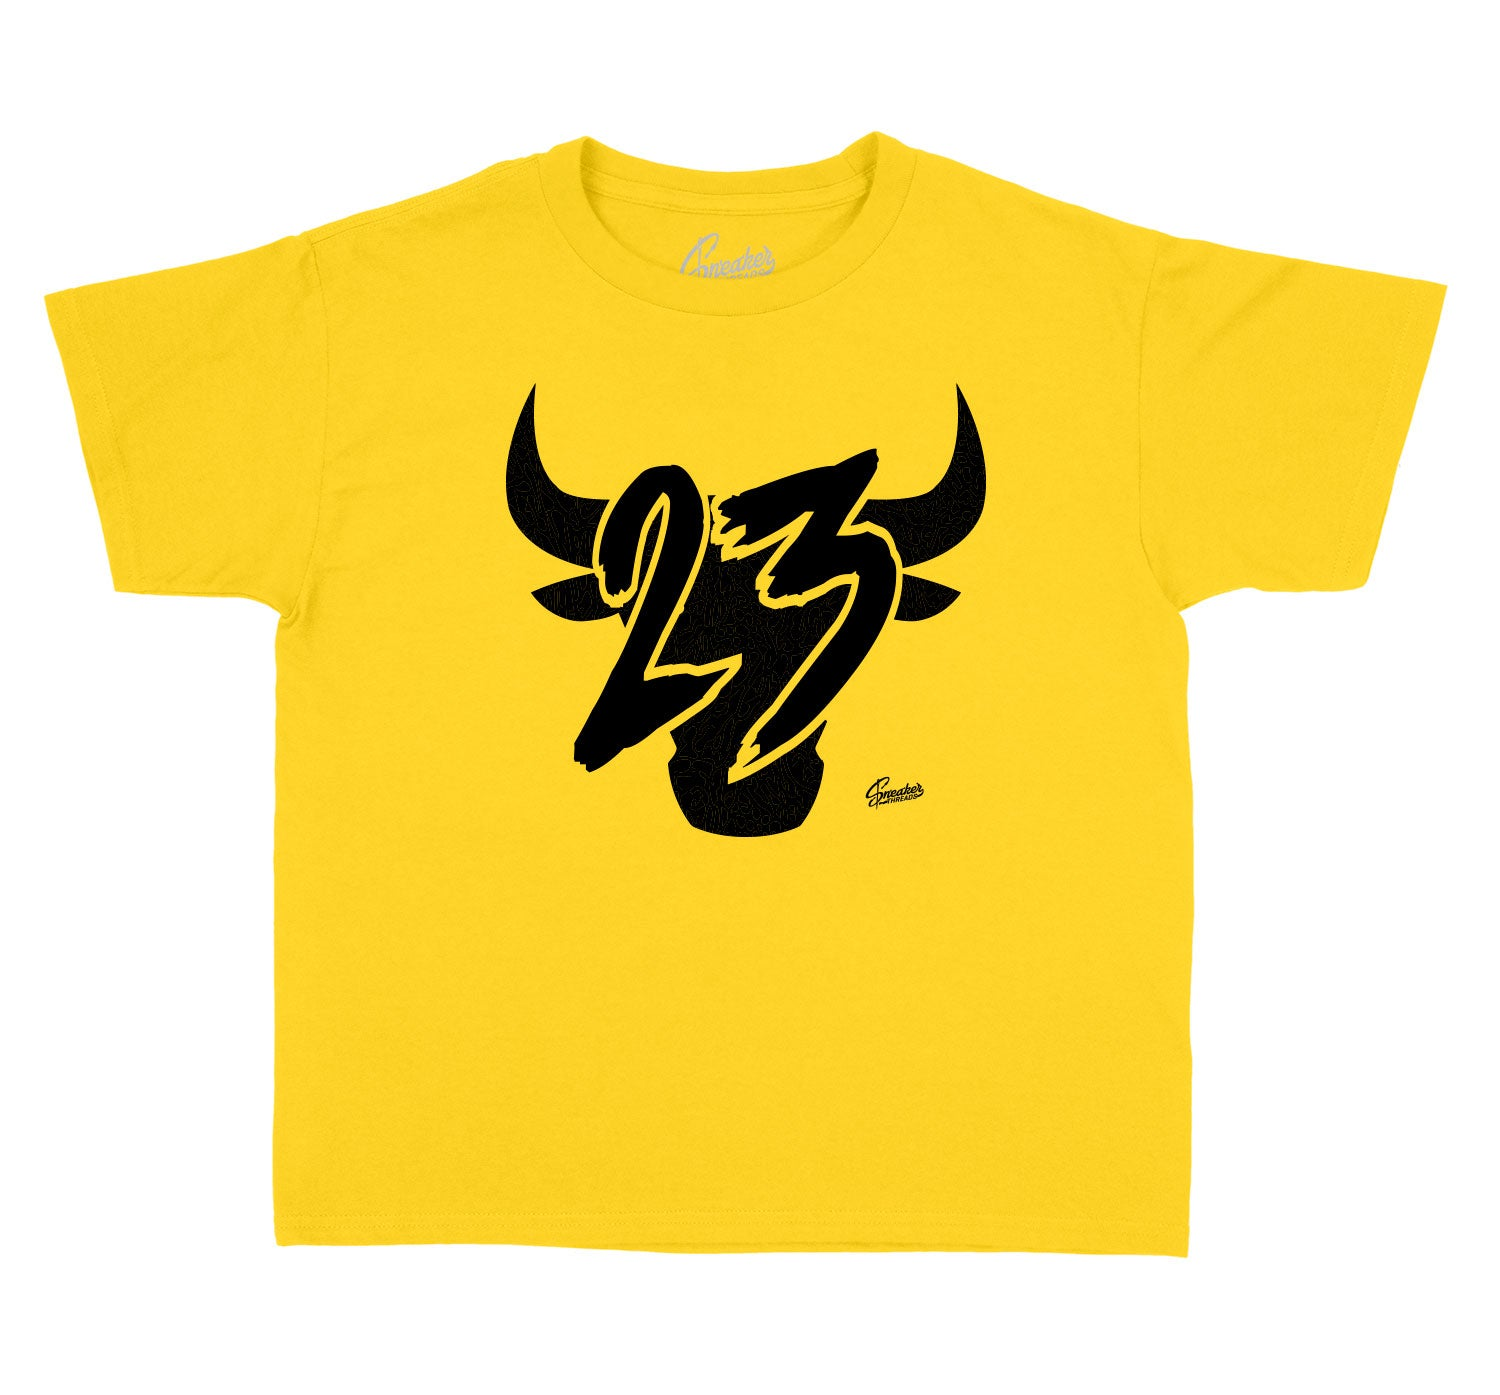 University Gold Joran 12 for kids matching shirts